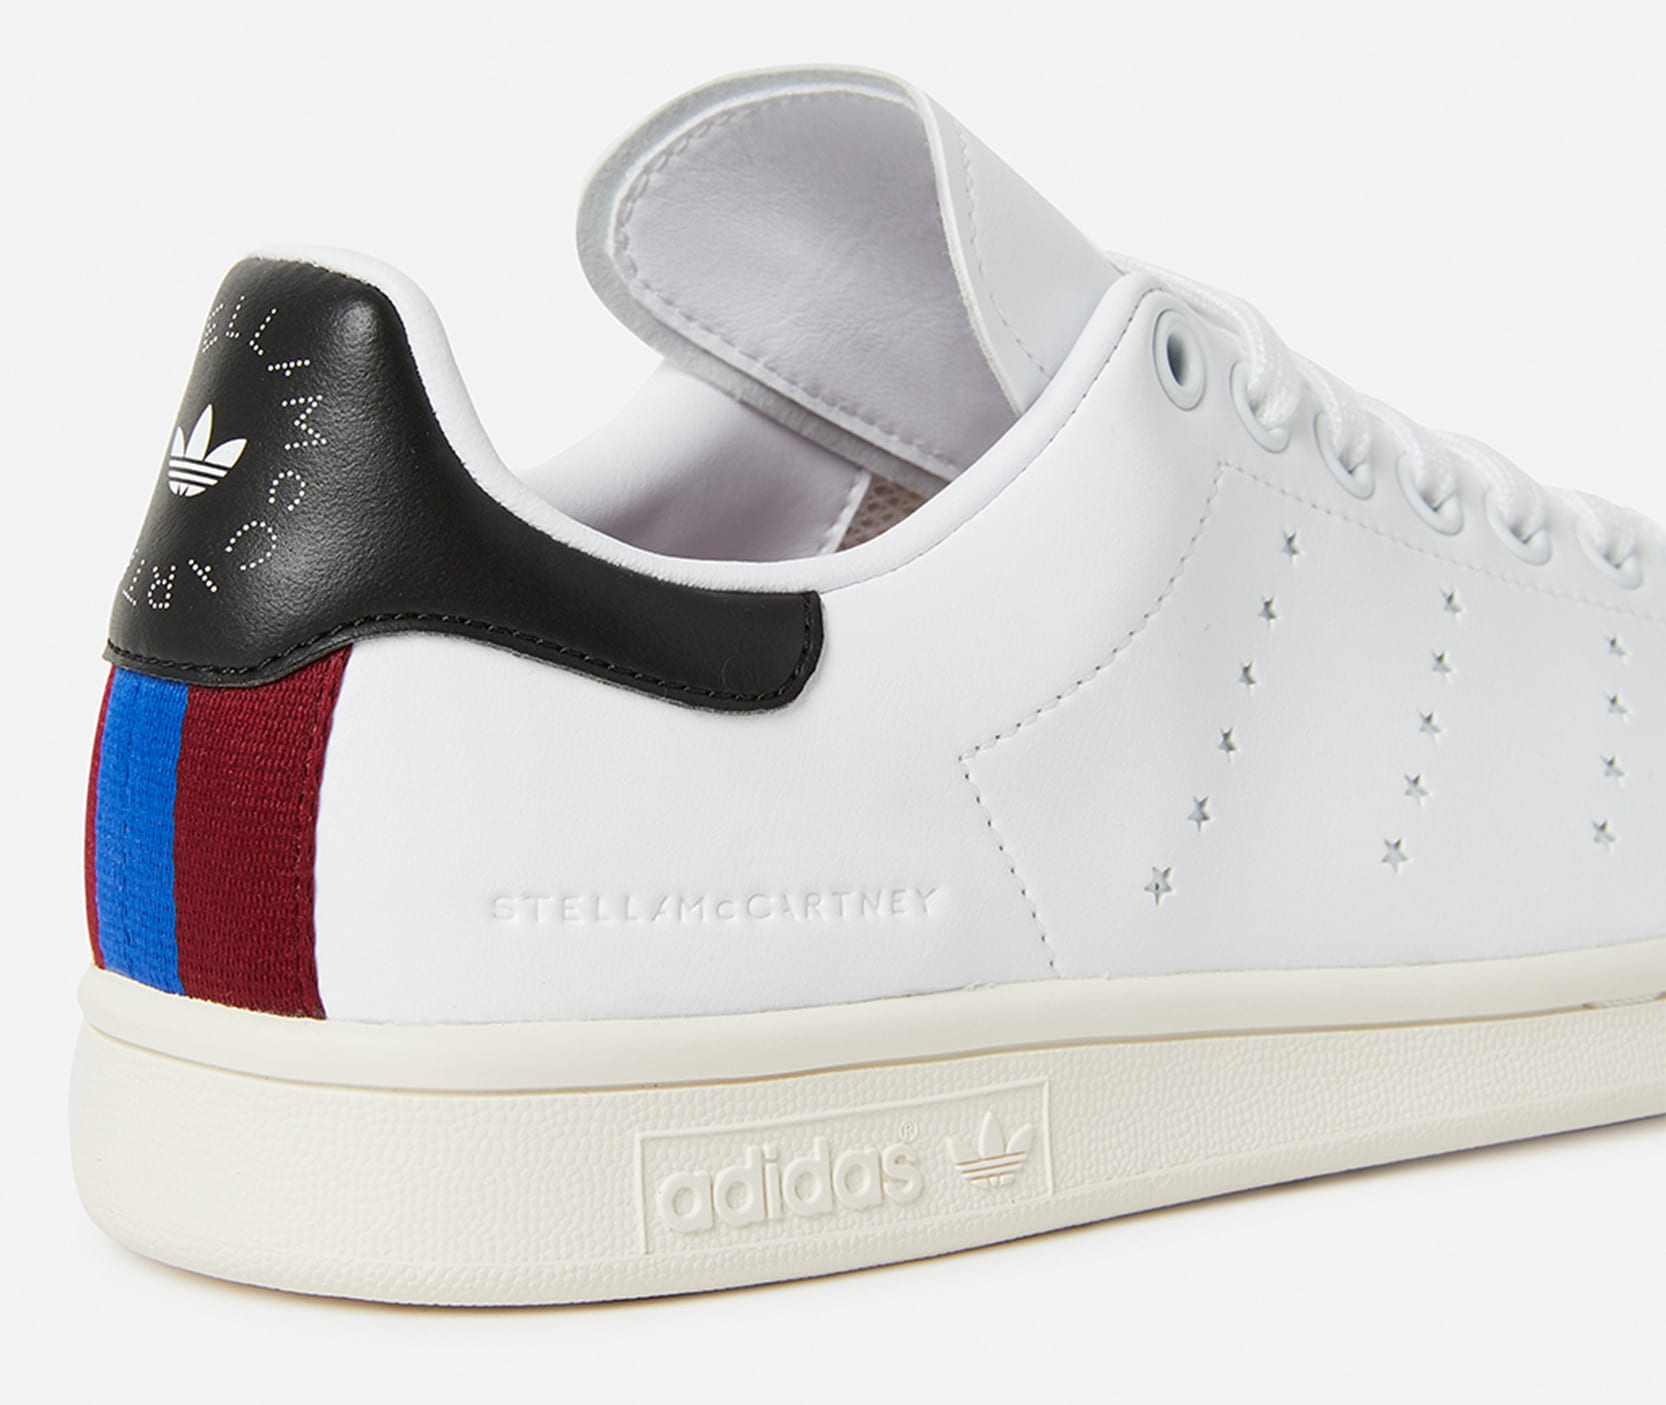 Stella McCartney x Adidas Stan Smith (Heel Branding)